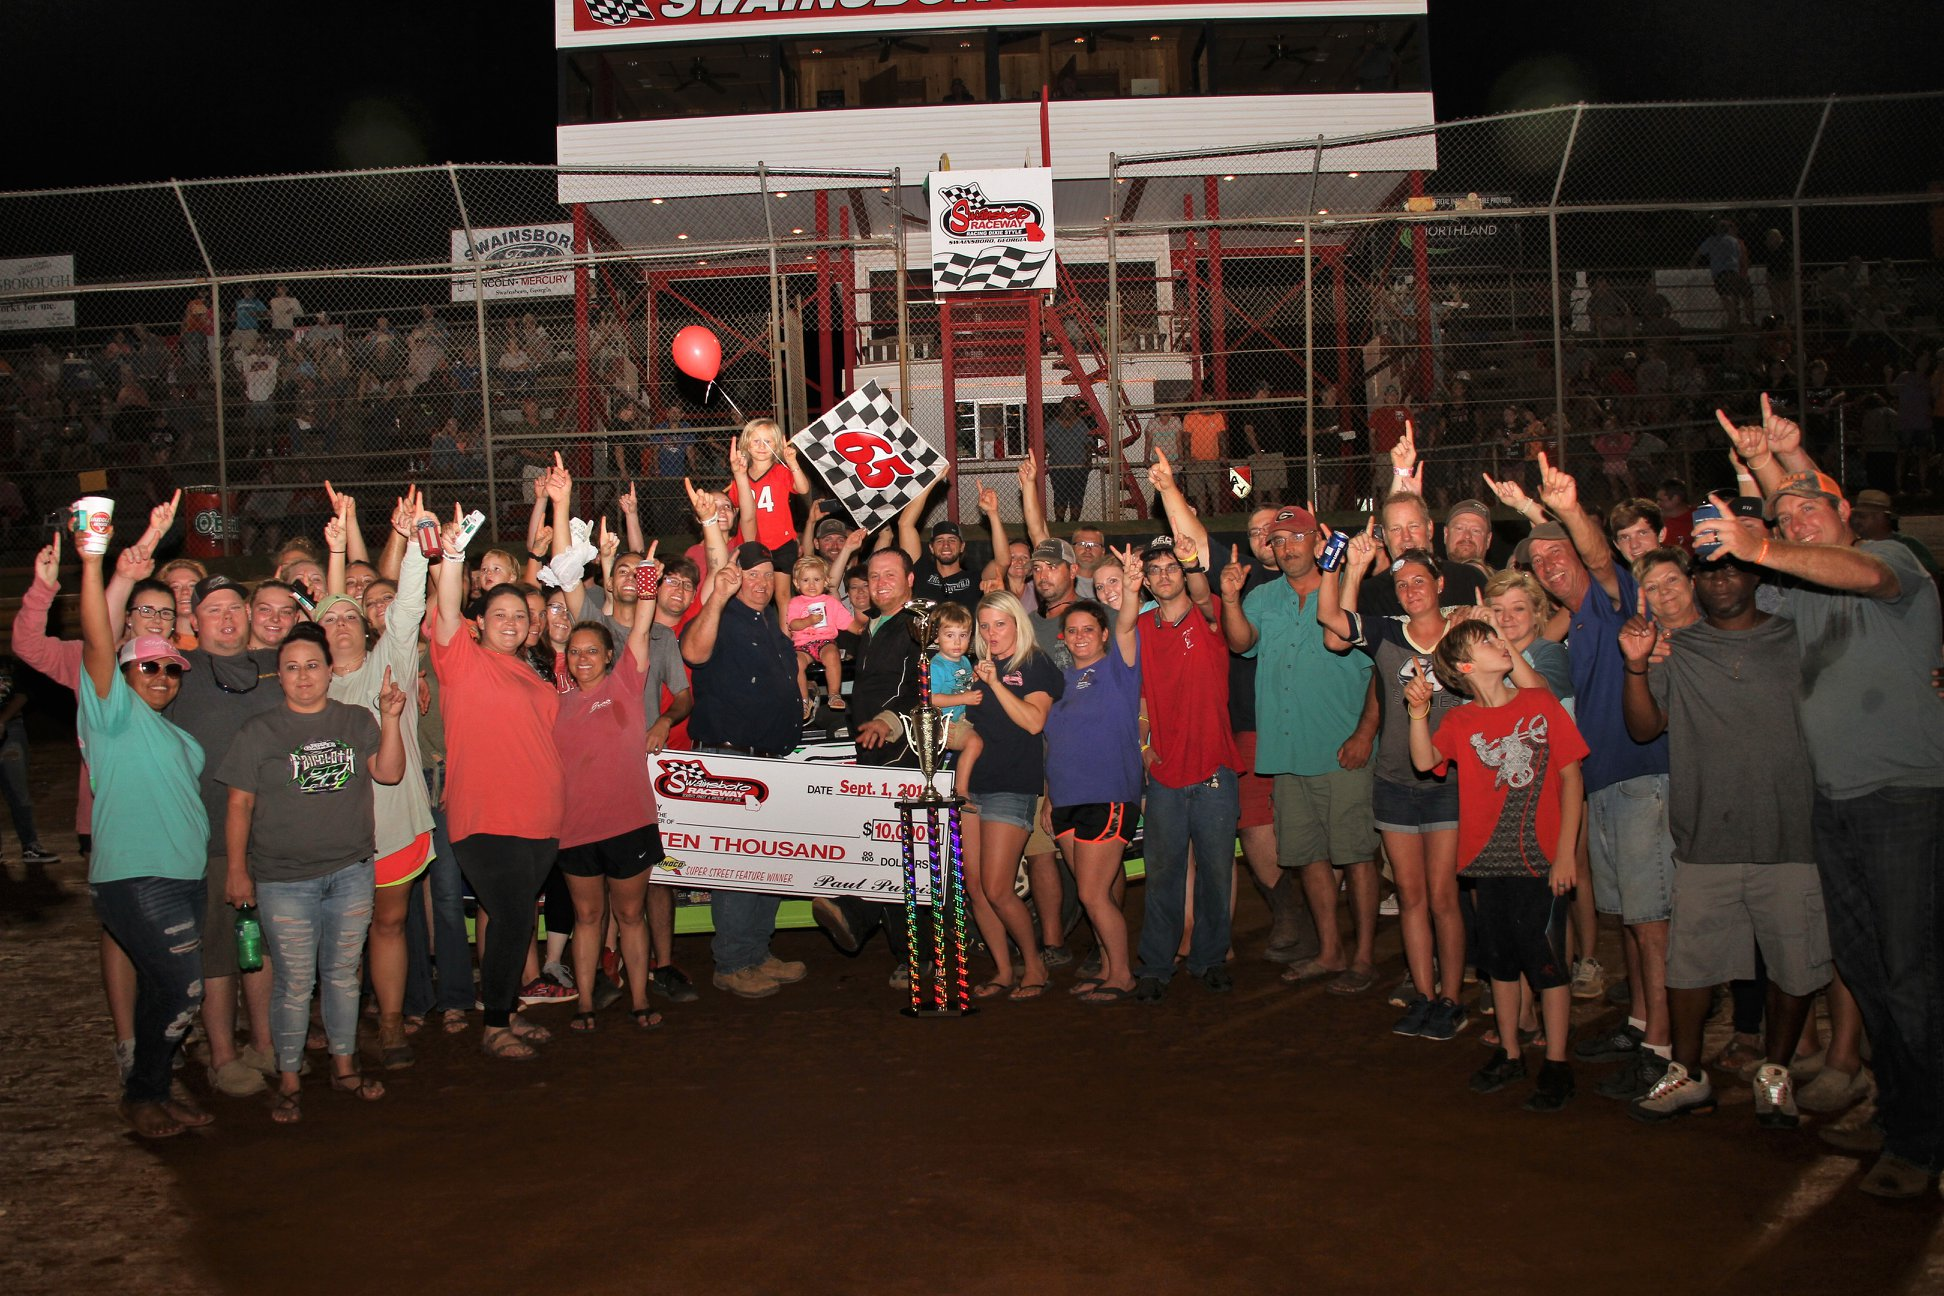 Sunoco Super Street $10,000 Shoot-Out at Swainsboro Raceway!